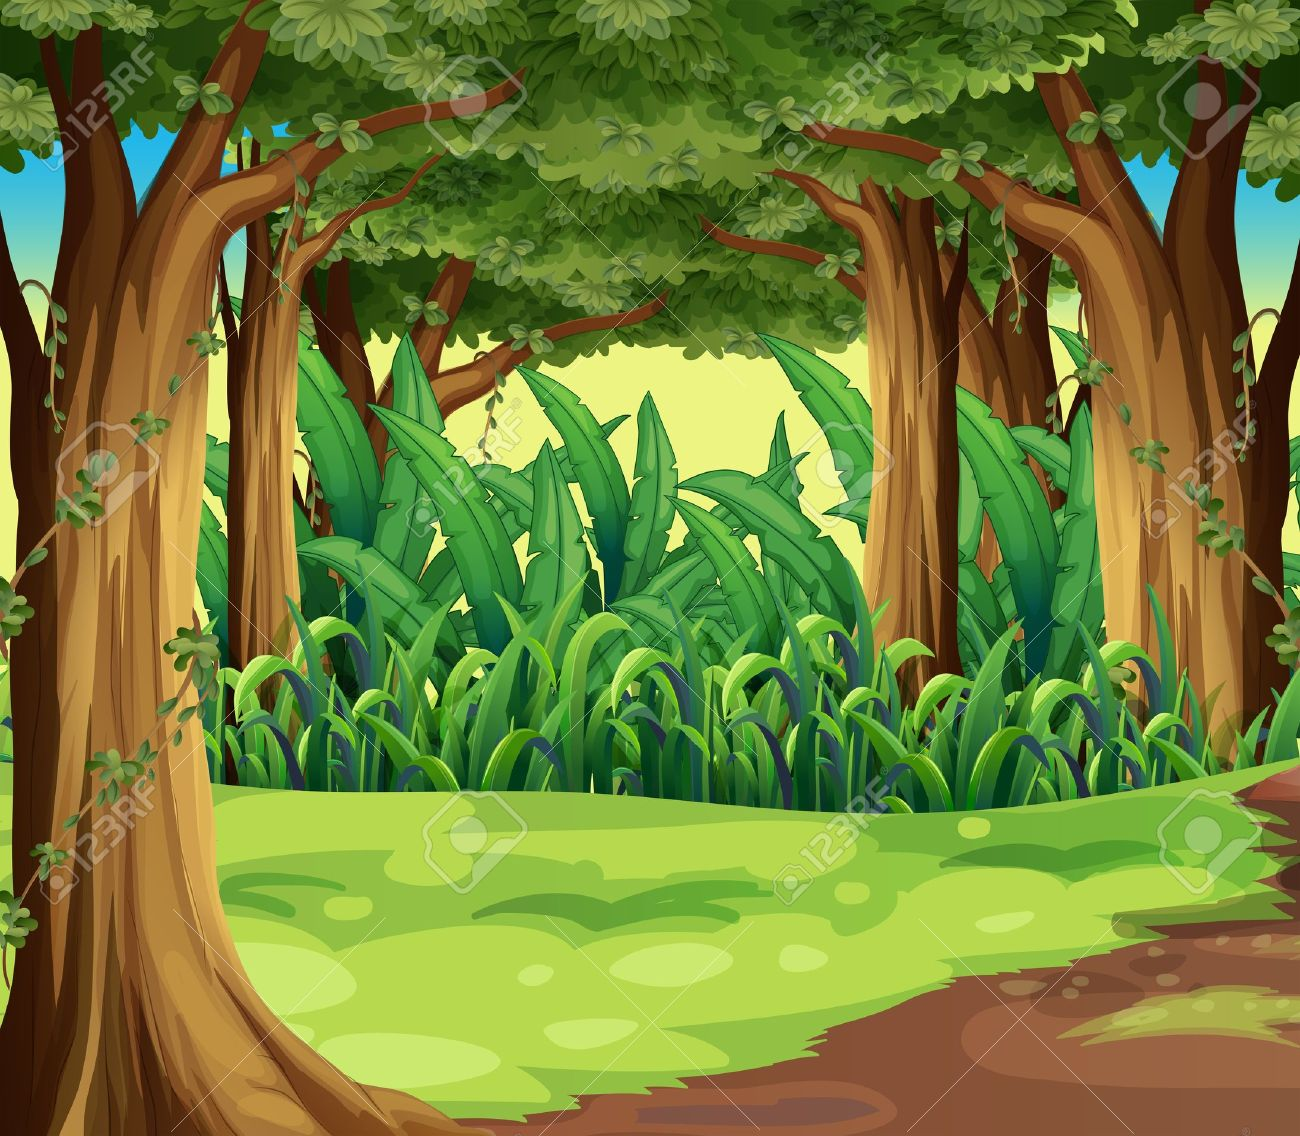 Free Forest Cliparts, Download Free Clip Art, Free Clip Art.